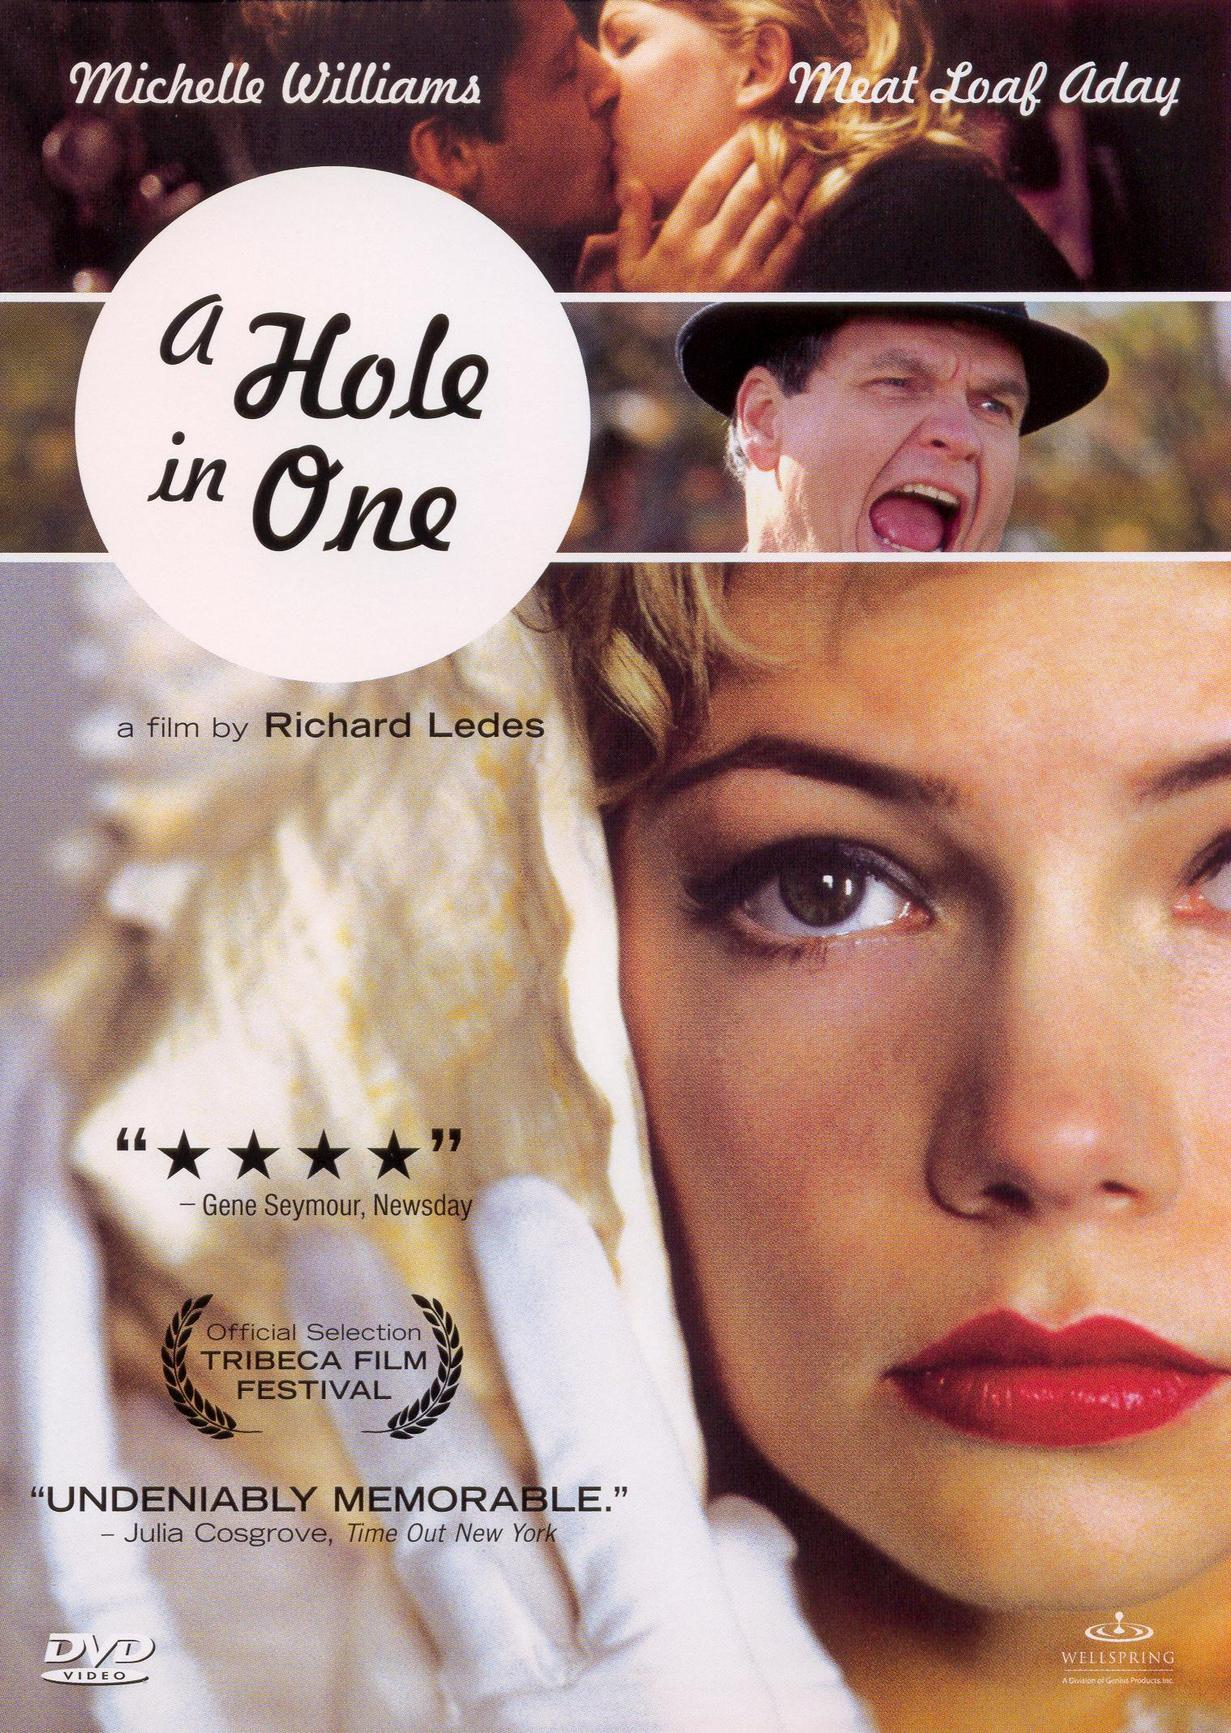 A Hole In One Film By Richard Ledes.jpg